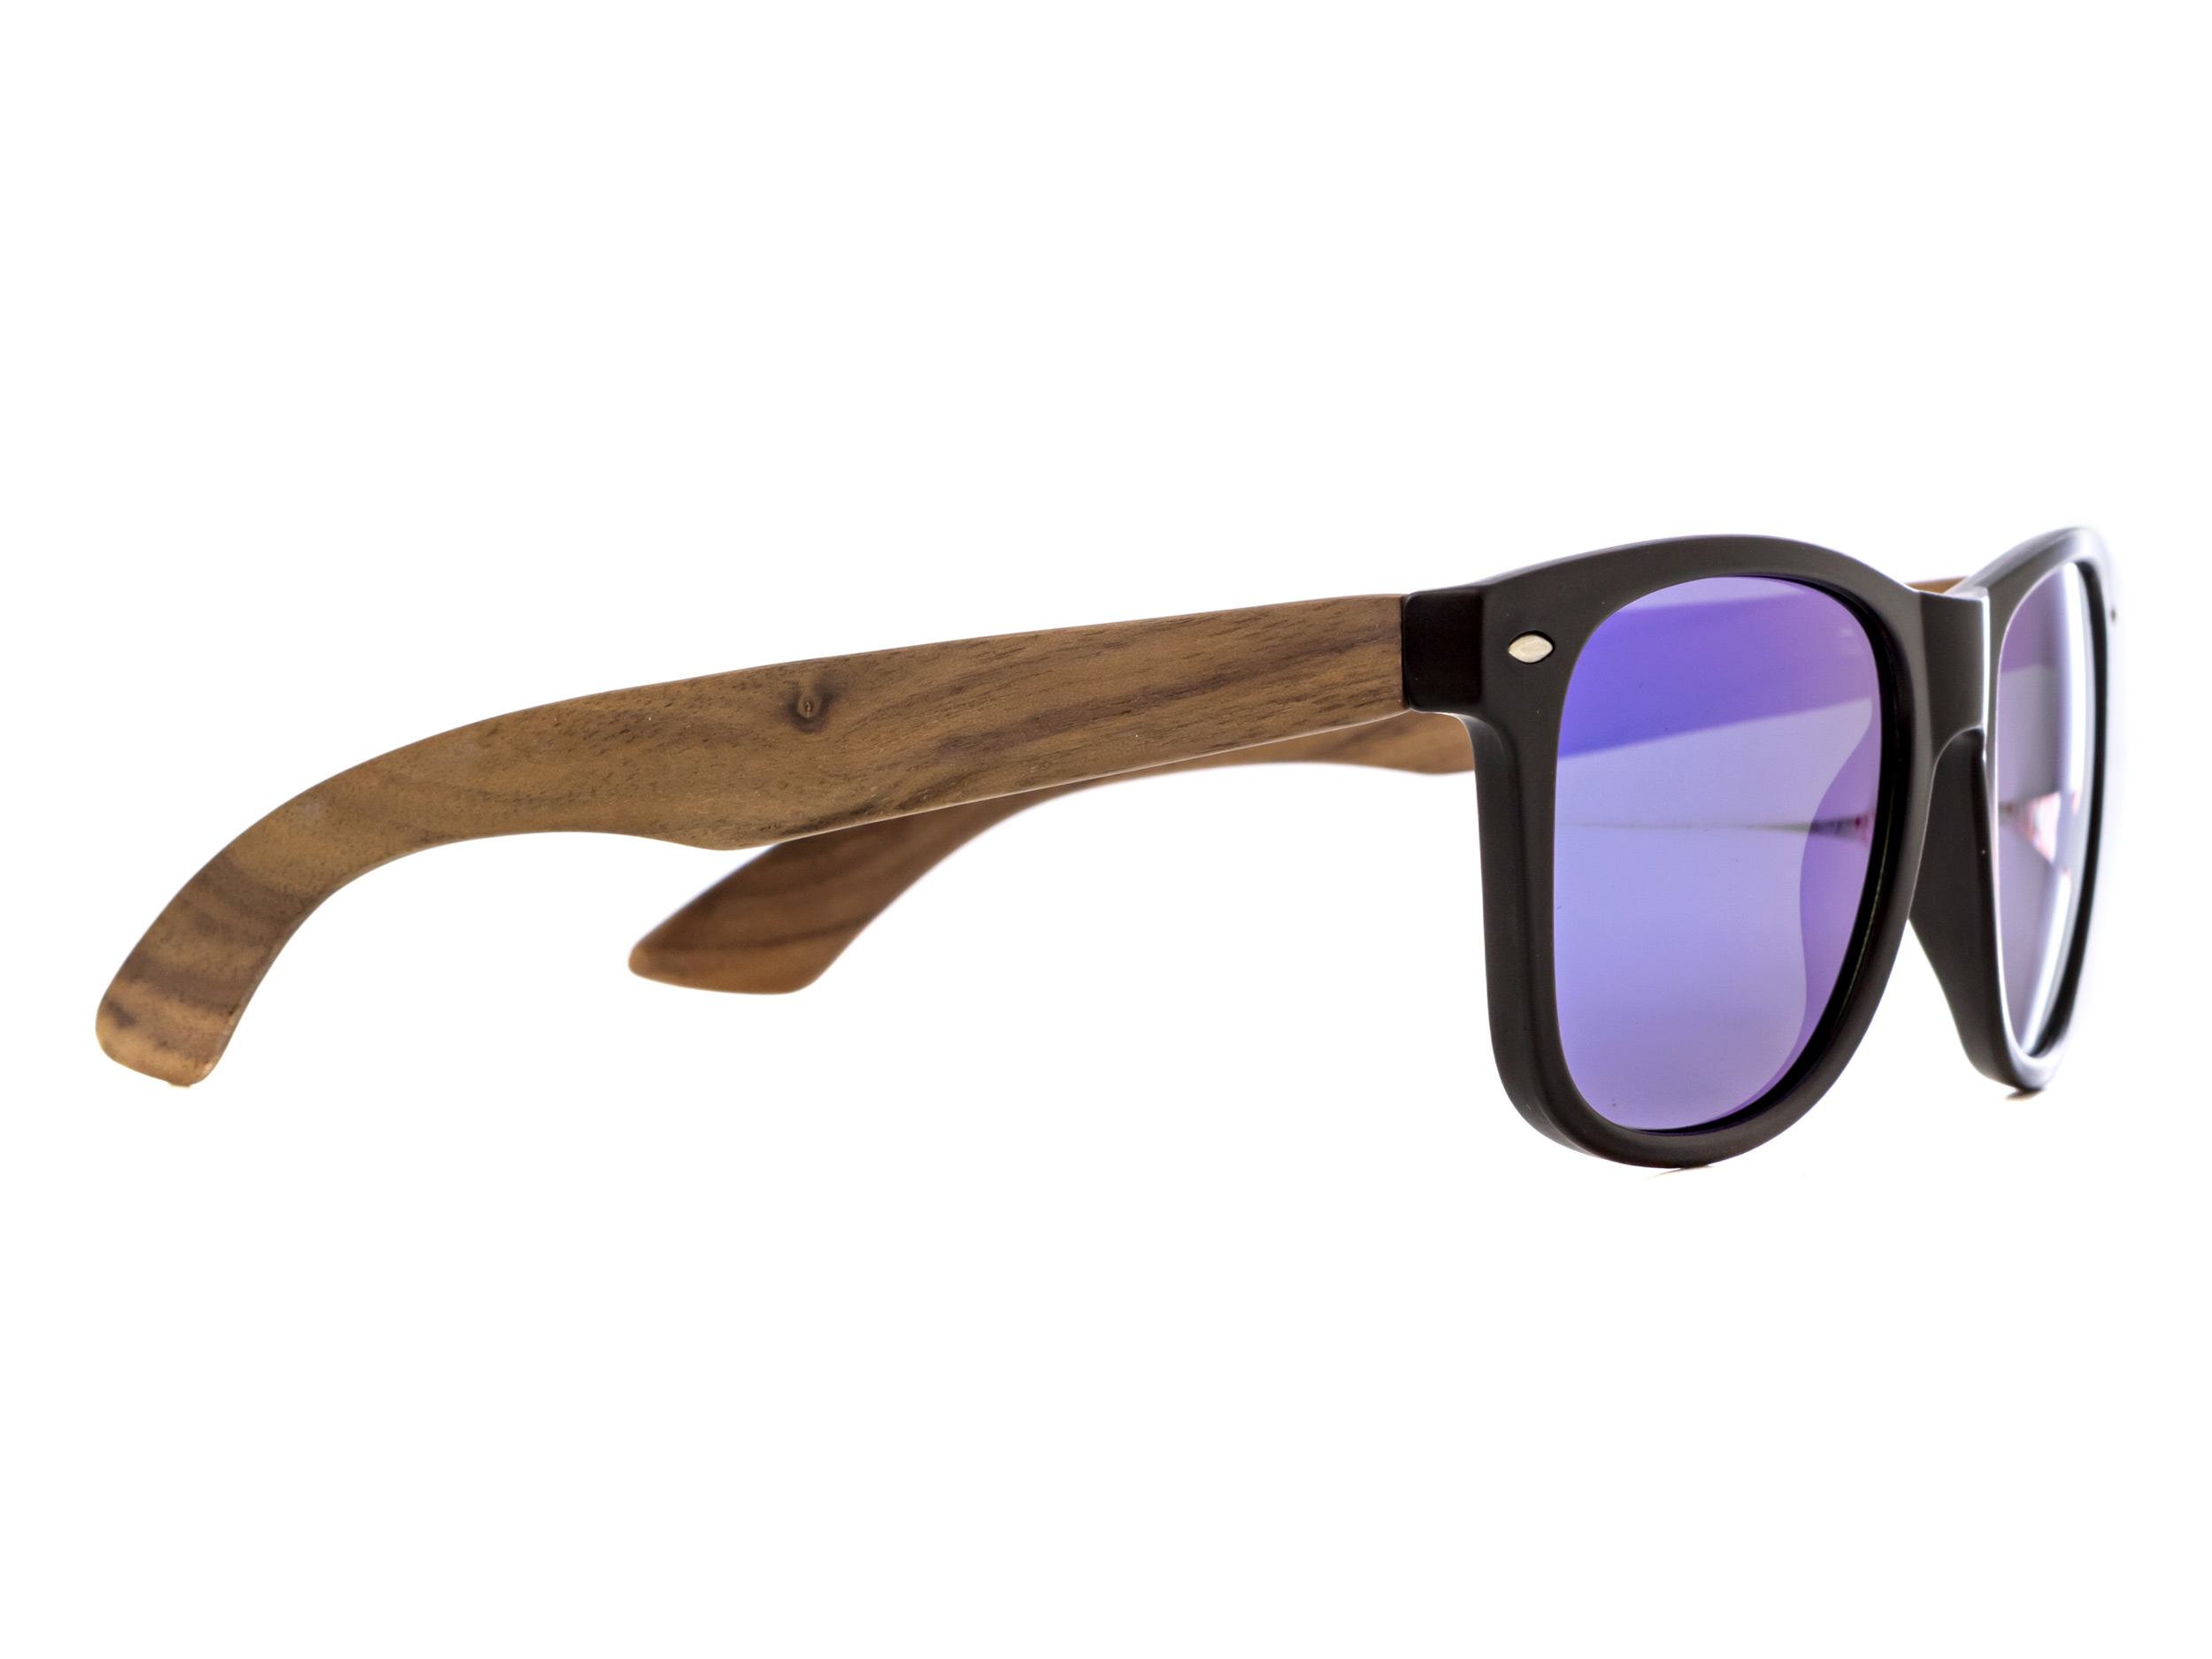 Walnut wood wayfarer sunglasses blue mirrored lenses - angle right